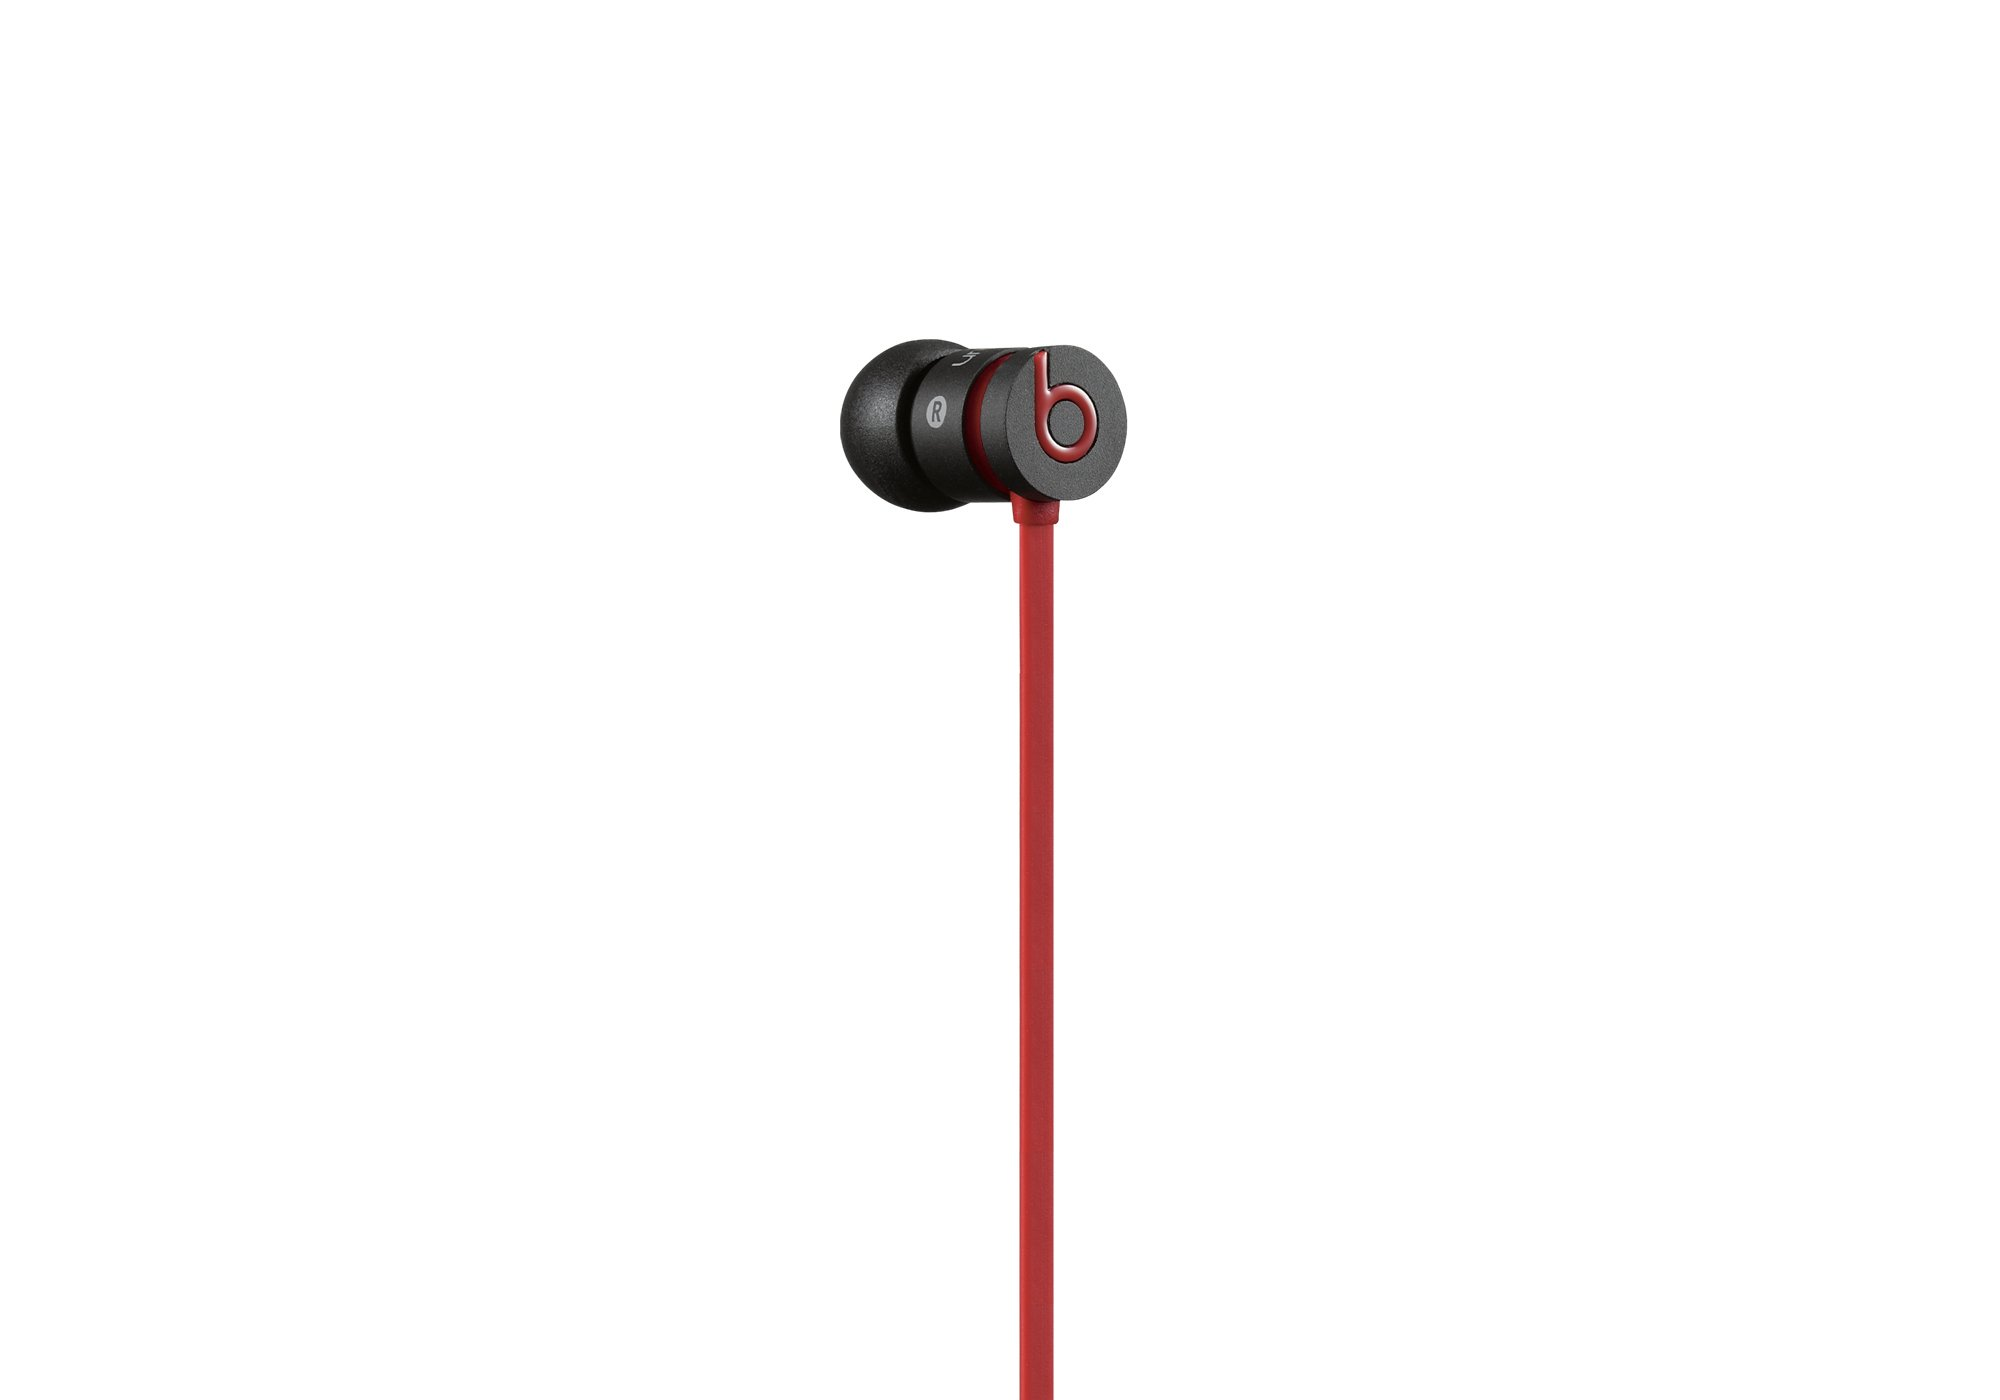 Osta Beats by Dr. Dre urBeats 2 In Ear Headphones with